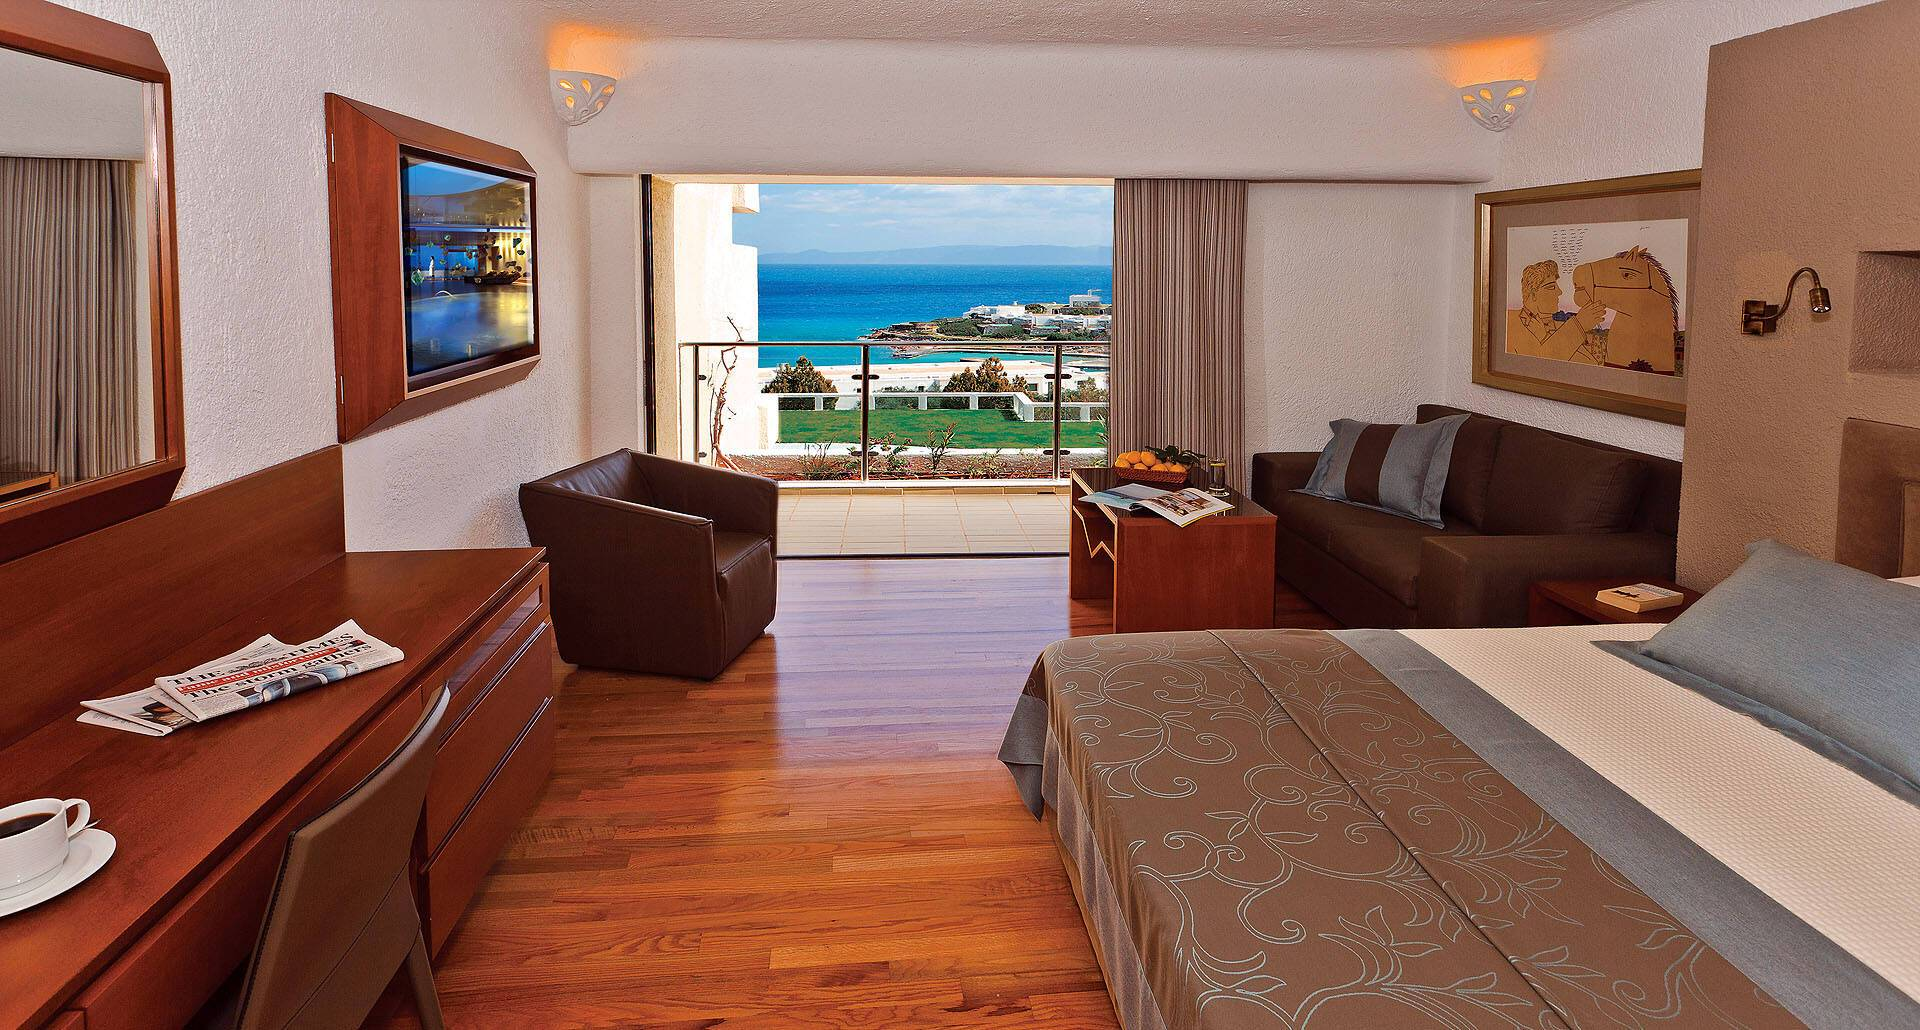 Porto Elounda Sea View Room Crete